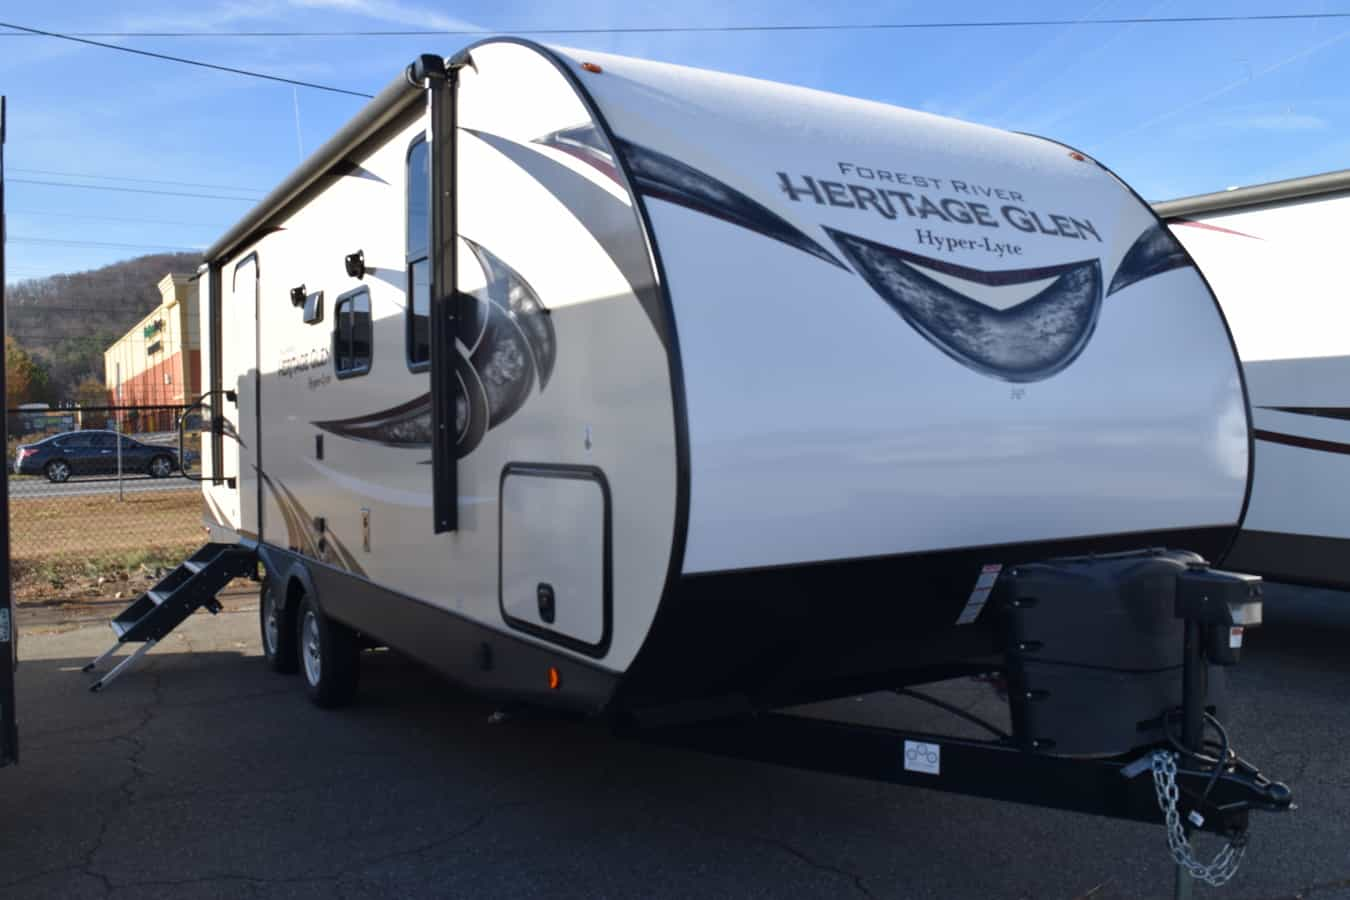 NEW 2020 Forest River HERITAGE GLEN 22RBHL - Three Way Campers